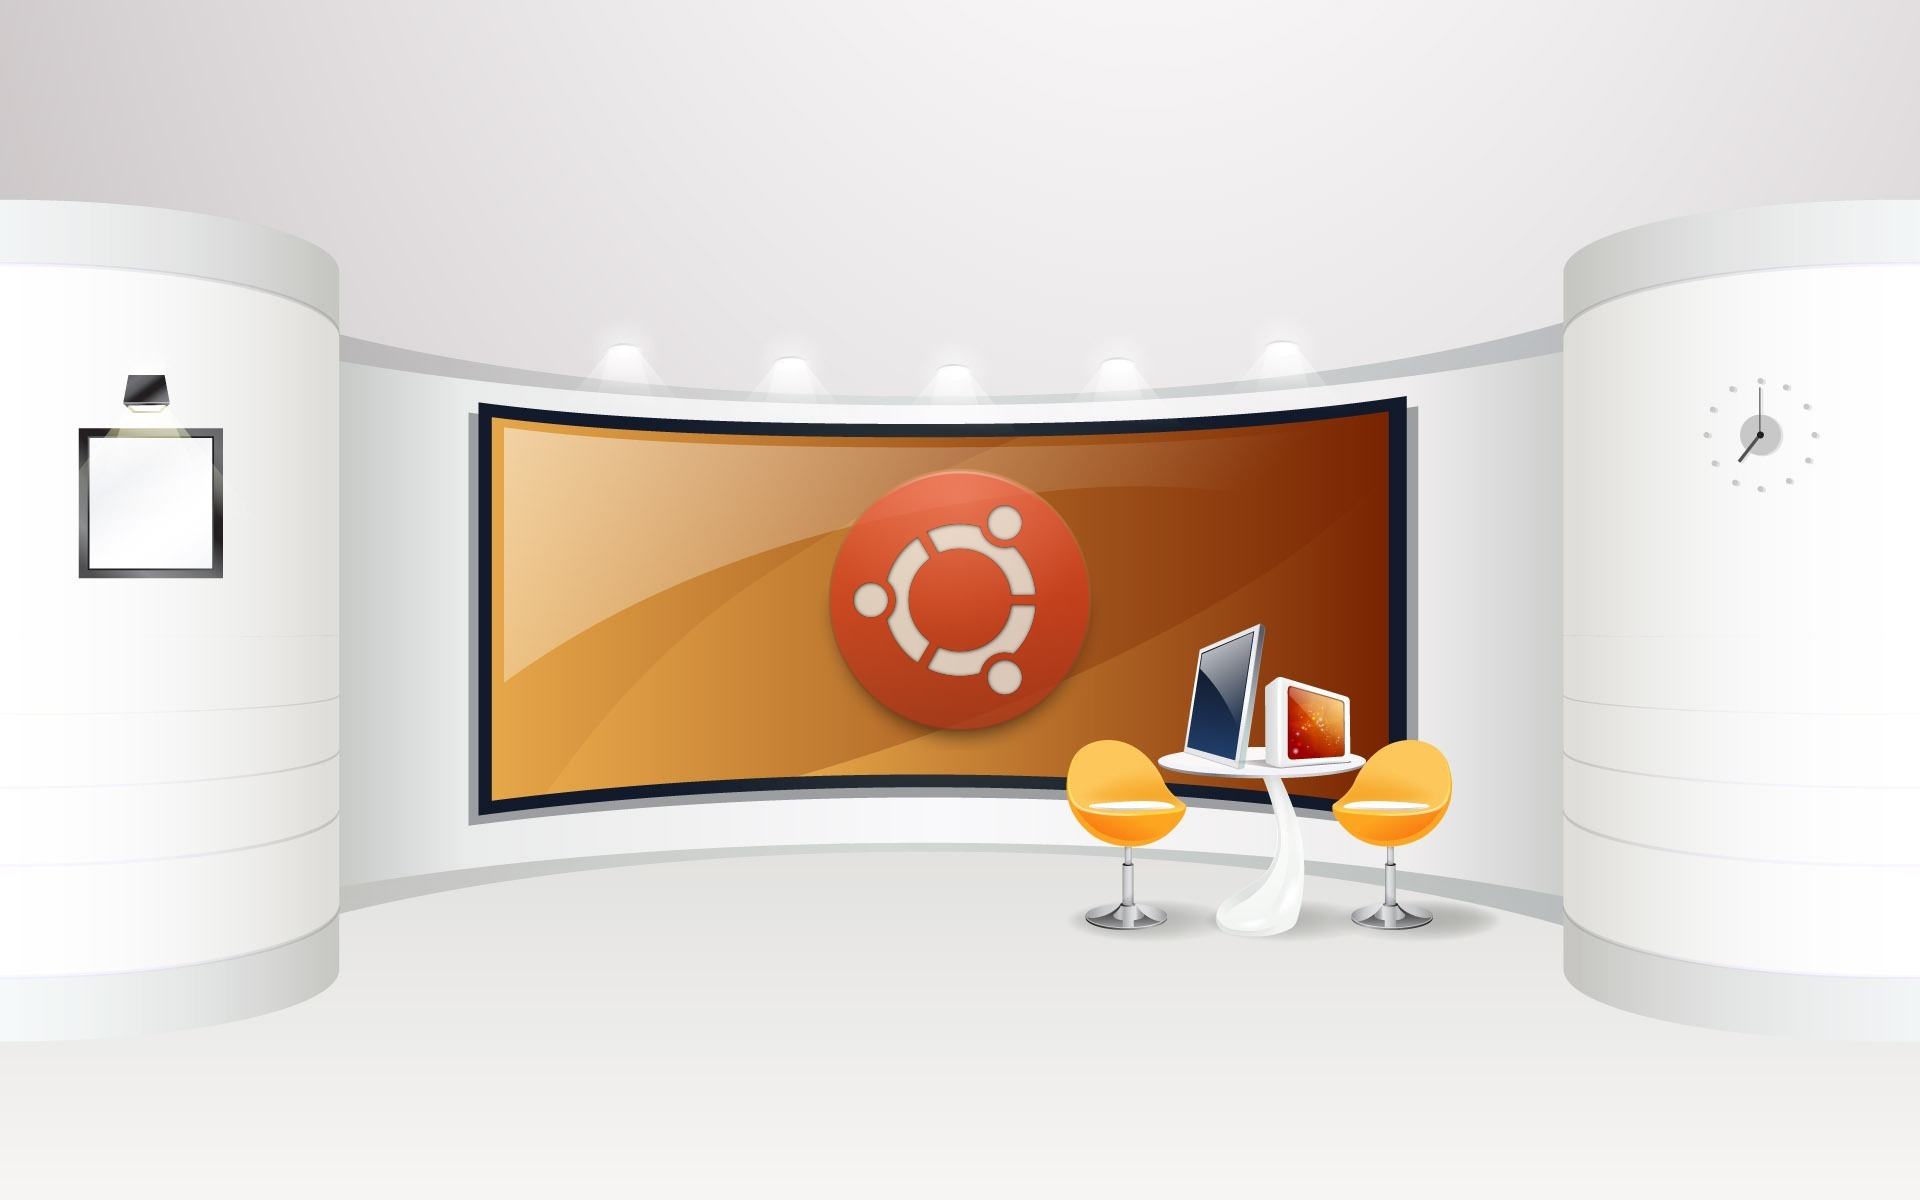 Ubuntu wallpaper home theater zon saja for Wallpaper home cinema